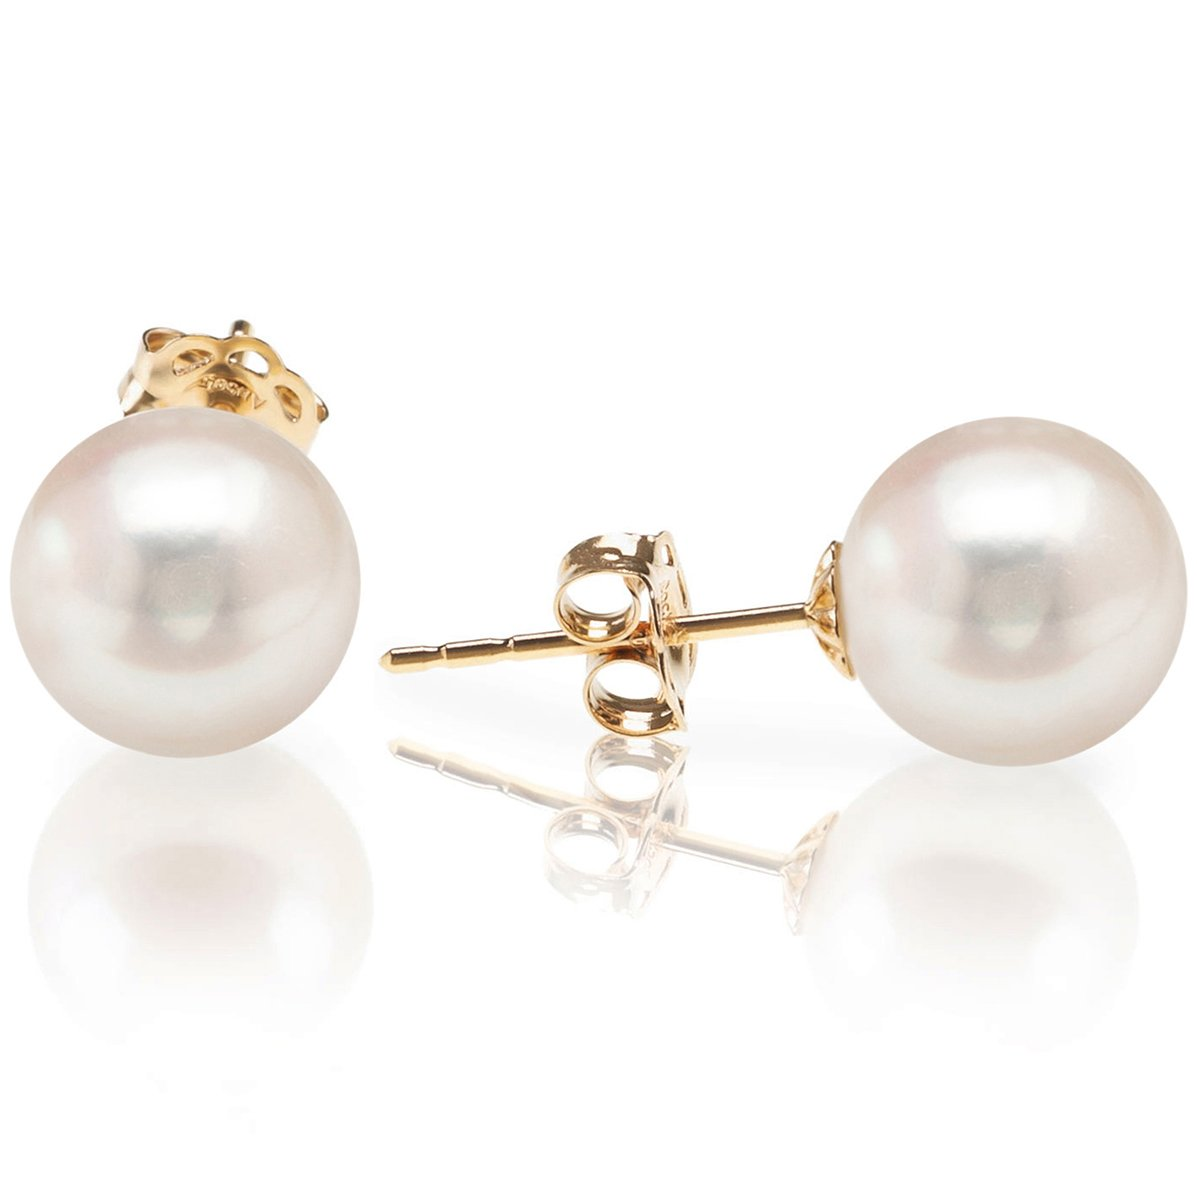 PAVOI 14K Yellow Gold Freshwater Cultured Round Pearl Stud Earrings - Handpicked AAA Quality - 5mm